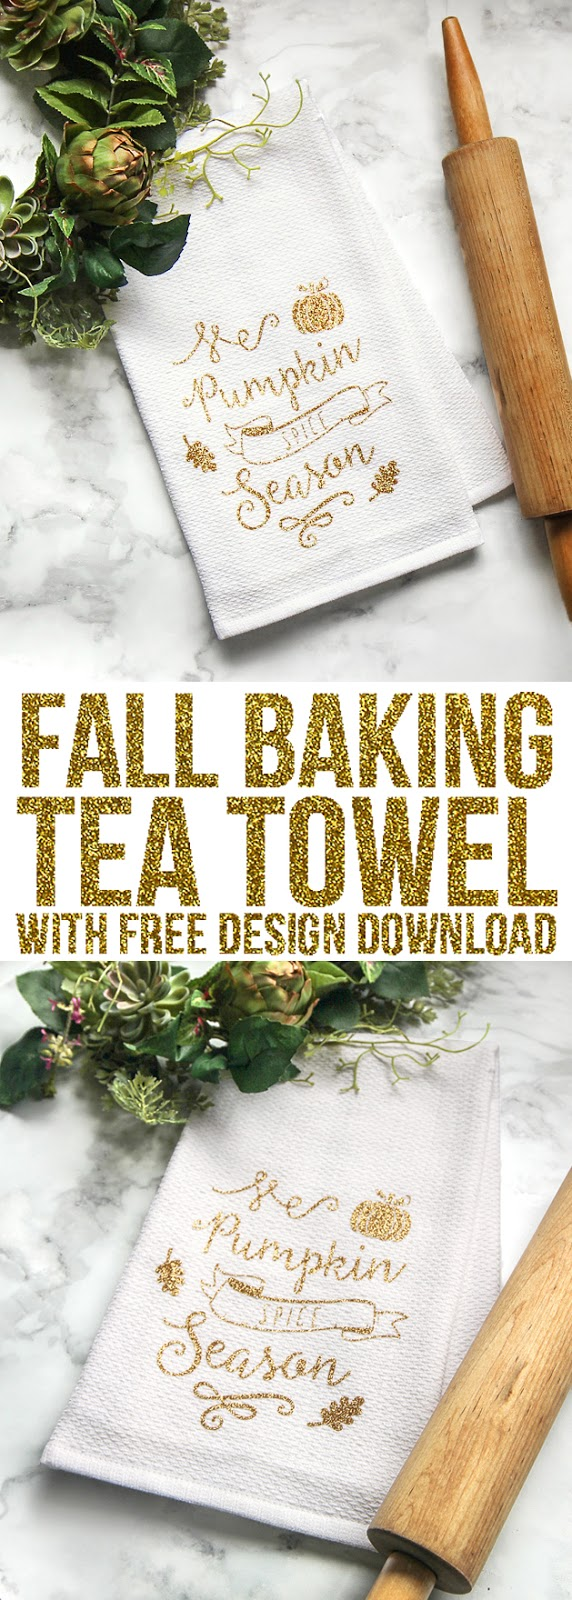 Make your own custom tea towel for fall using glitter heat transfer vinyl and a Silhouette or Cricut machine. It's a cute and easy fall craft to decorate your home. #fallcrafts